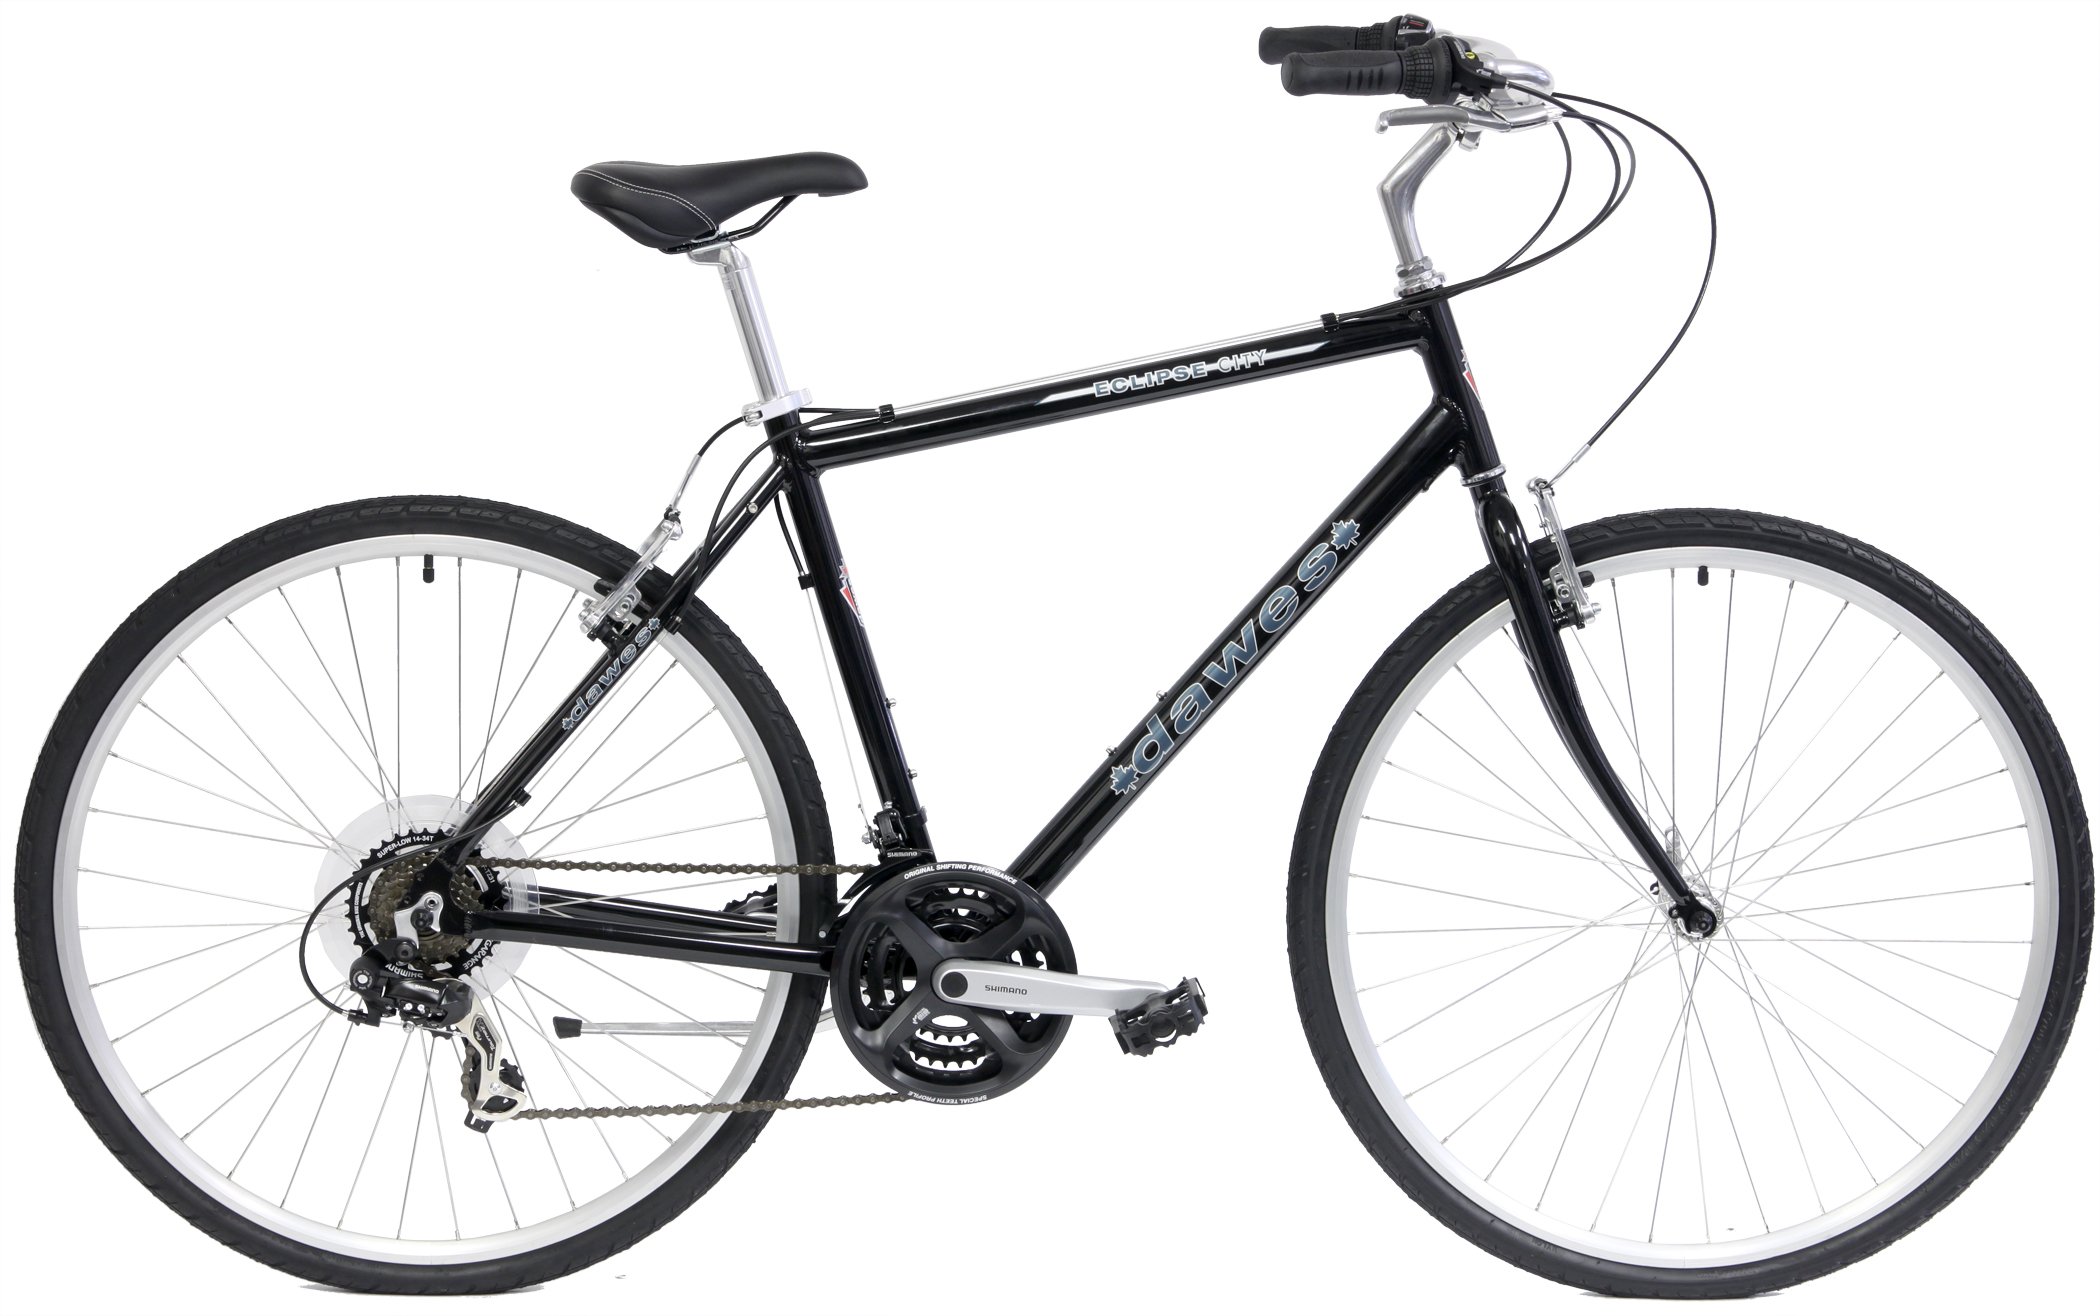 ECLIPSE CITY - 21sp ALUMINUM HYBRID w/ SHIMANO